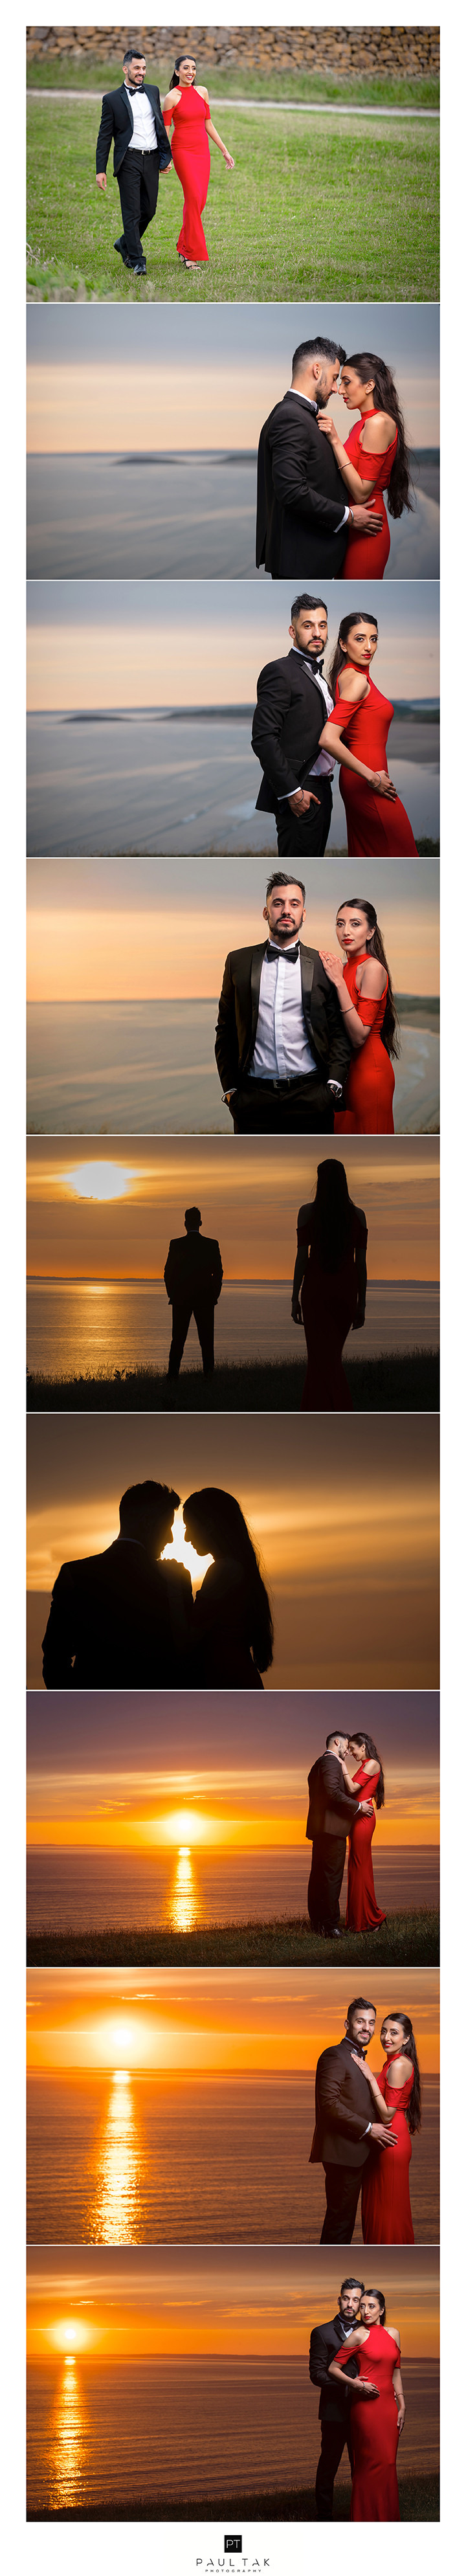 End of the day pre shoot sun setting captured by asian wedding photographer